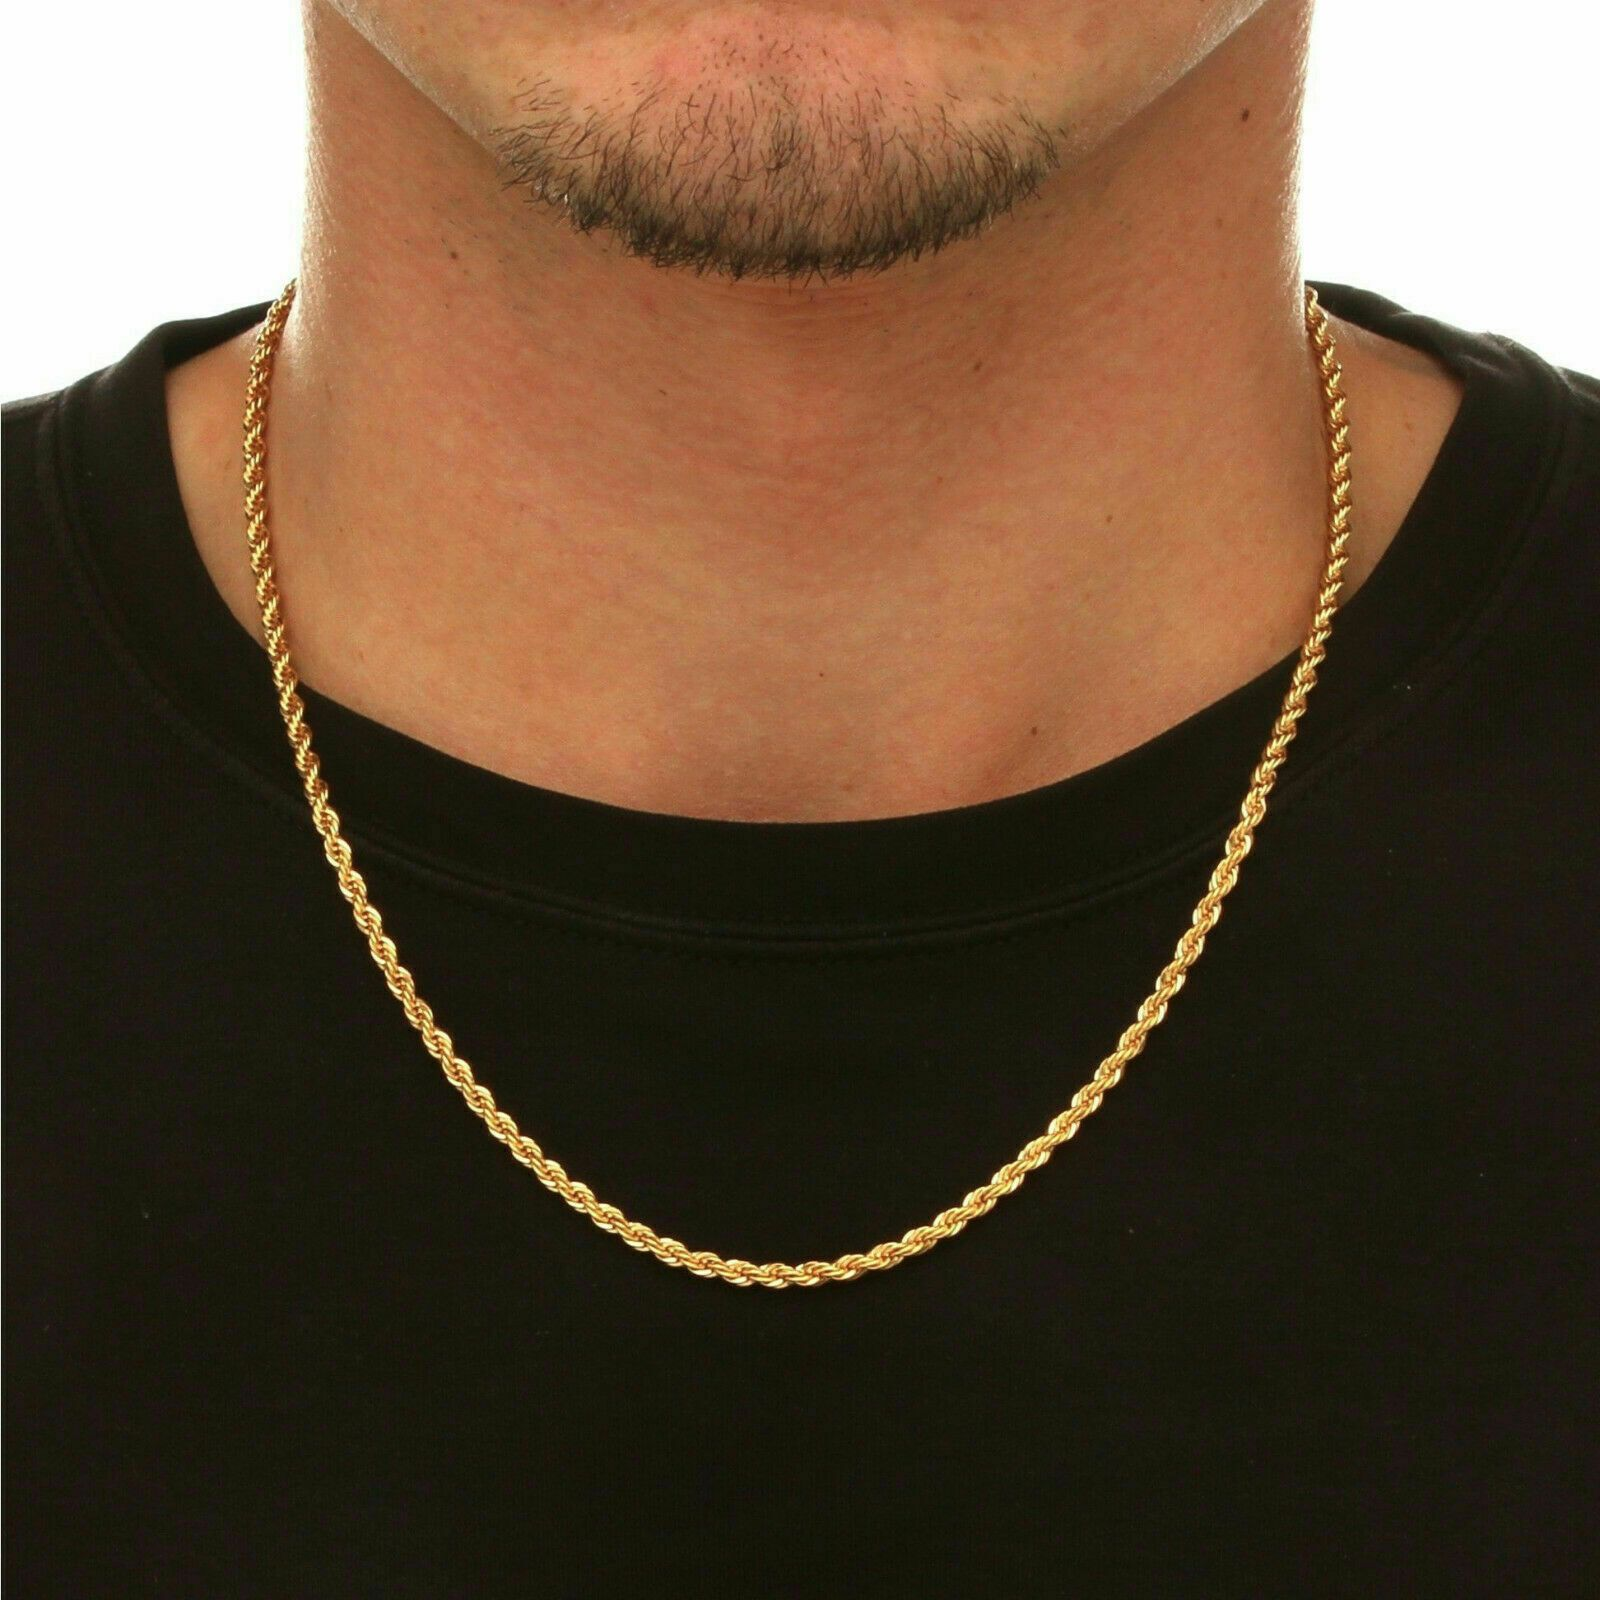 18k Solid Gold Rope Chain Necklace Men Women 14 18 20 22 24 26 28 30 Https Uxshops Com P Gold Necklace For Men Mens Rope Necklace Gold Rope Chains